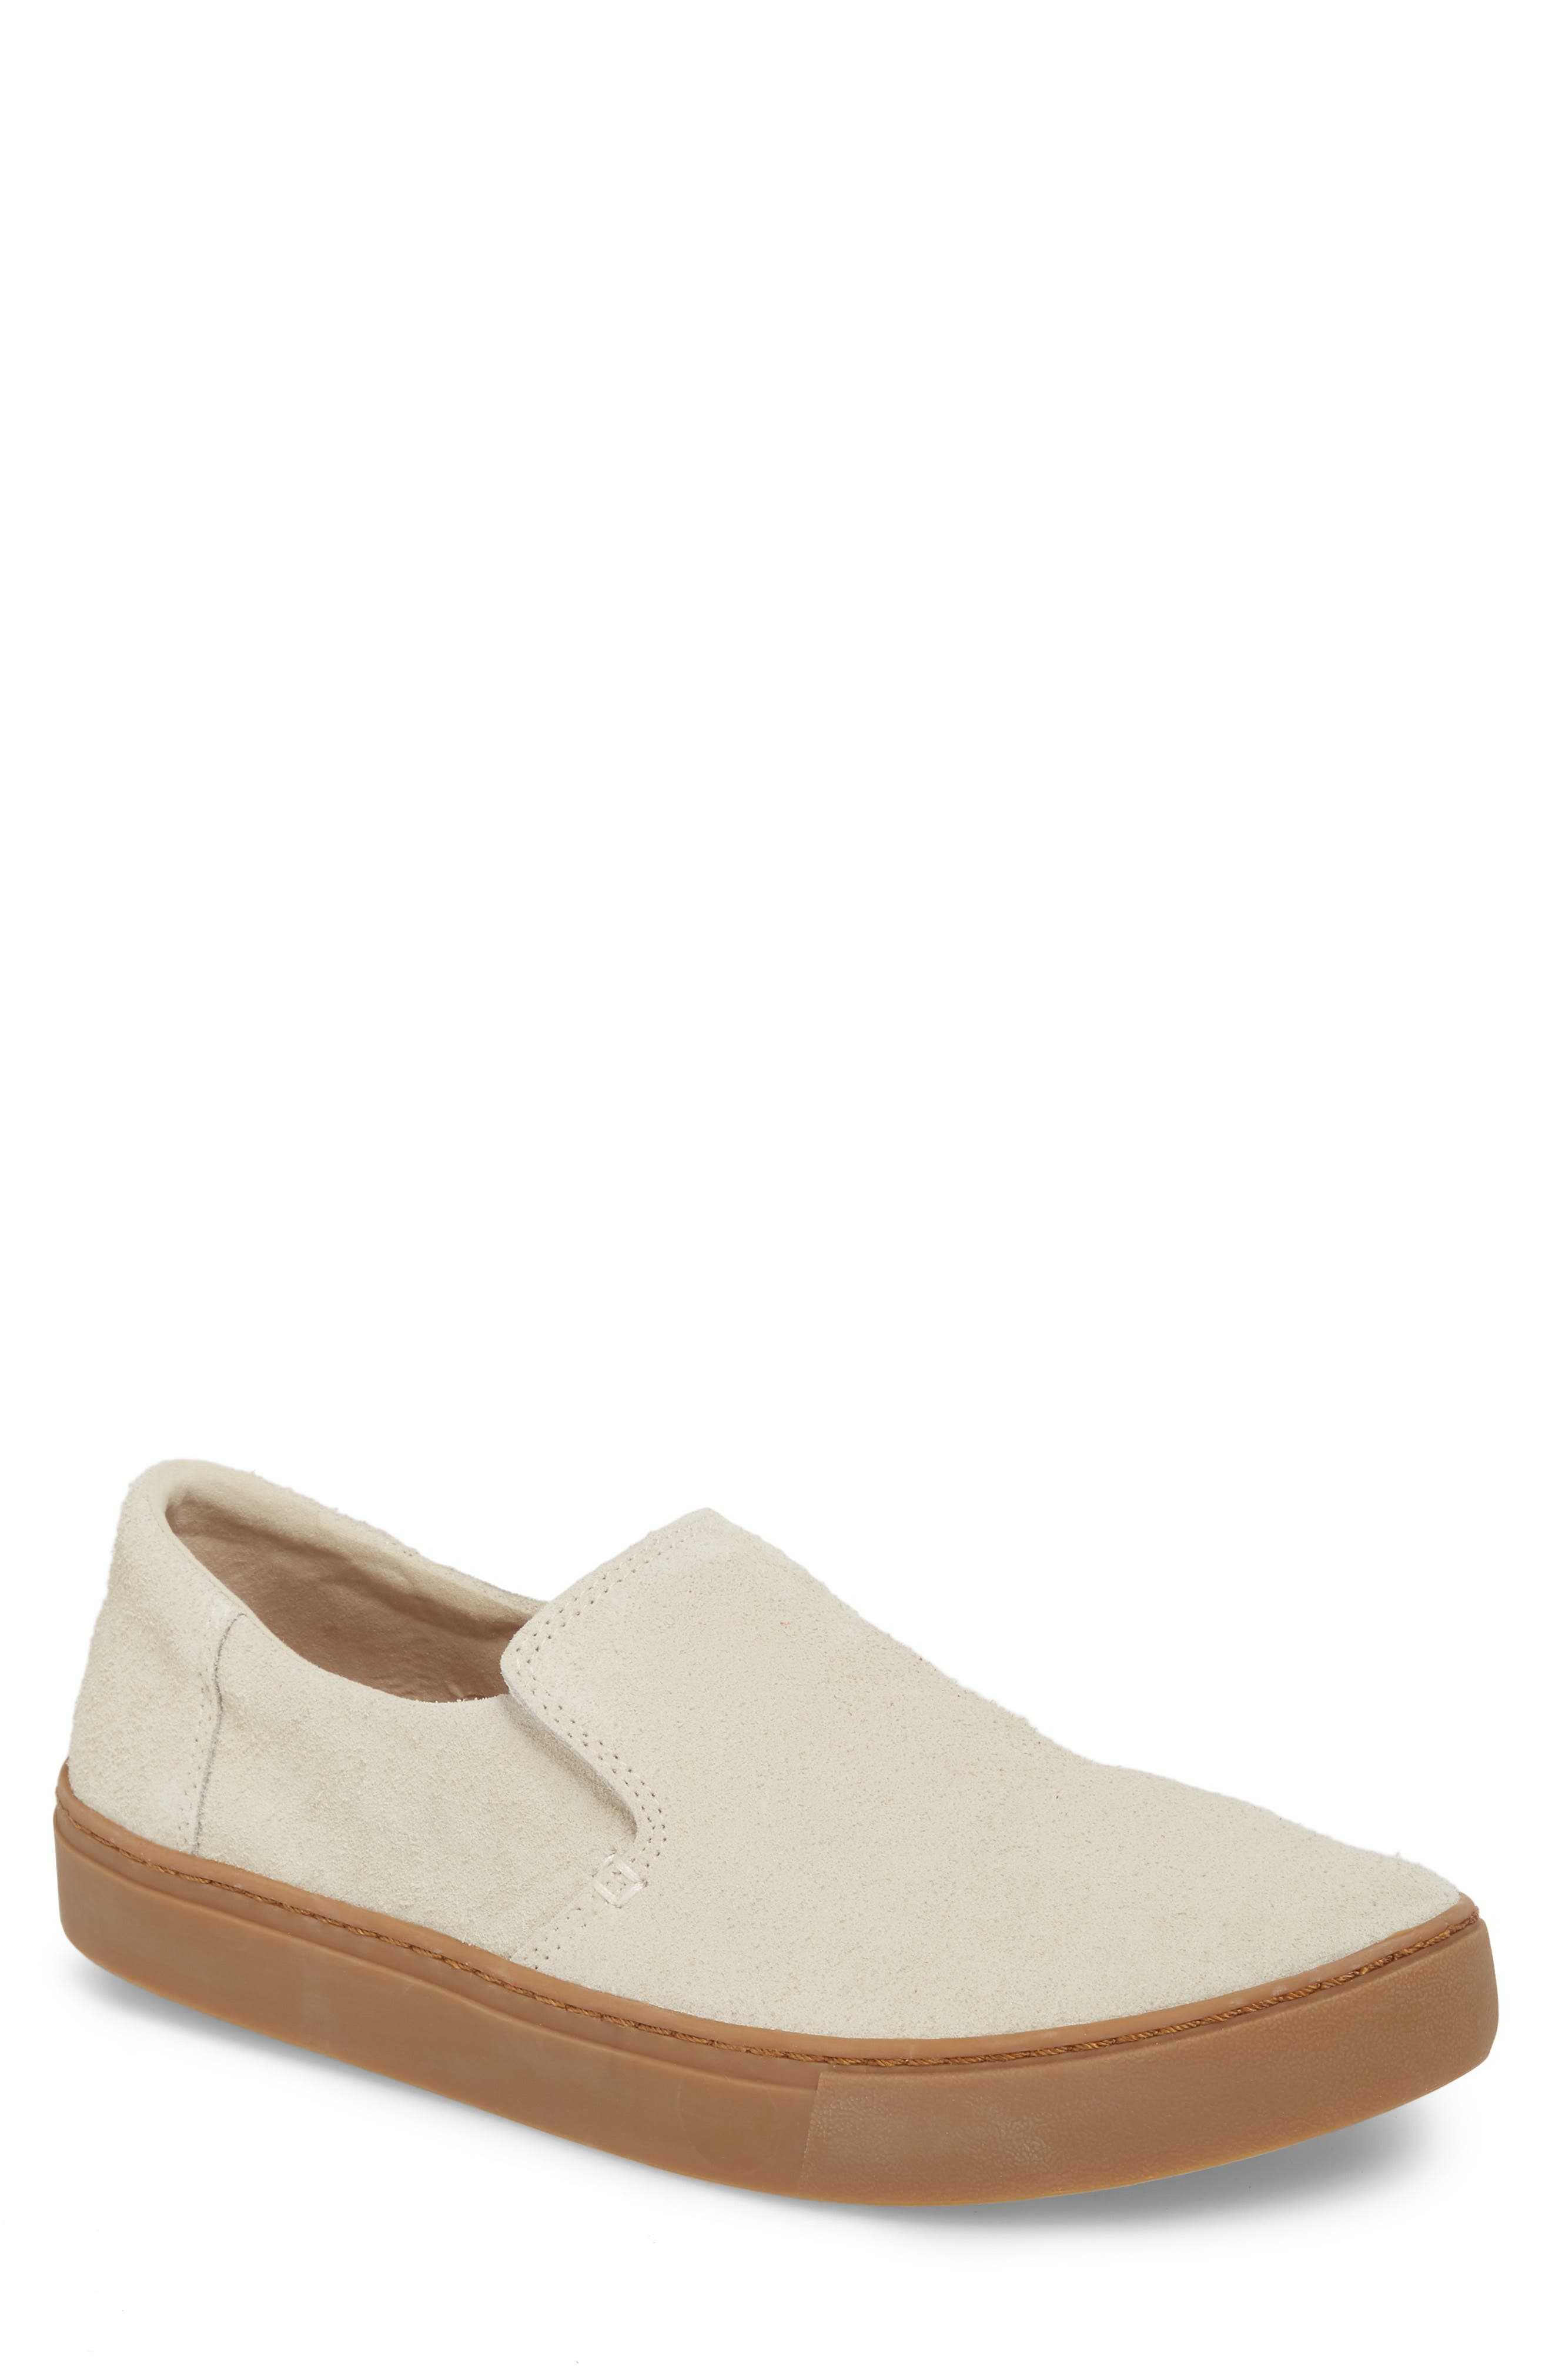 Loma Slip-On Sneaker,                             Main thumbnail 1, color,                             Birch Shaggy Suede/ Gum